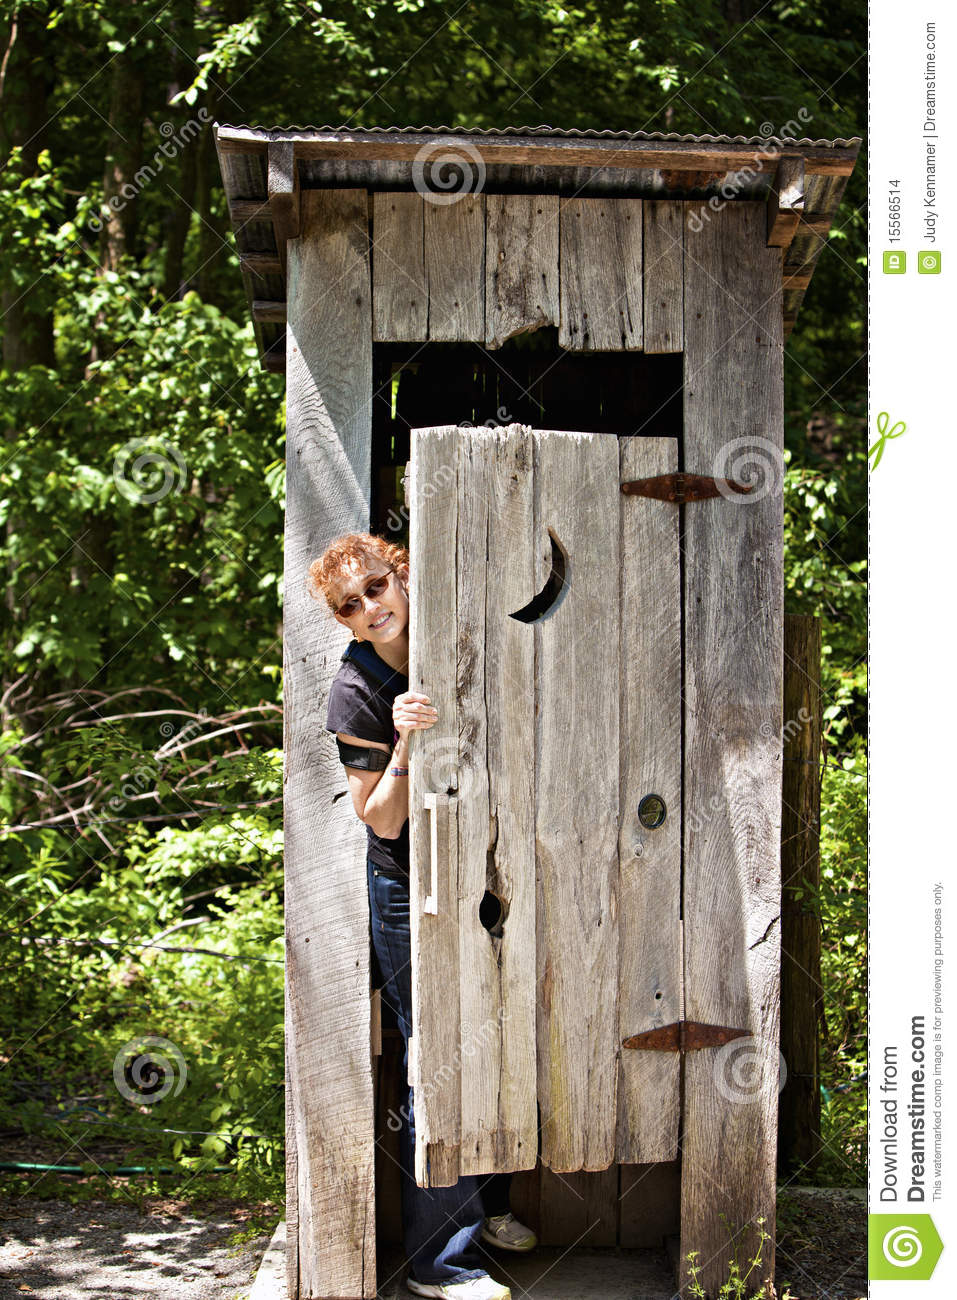 Outhouse With Woman Peeking Out Stock Photo Image Of